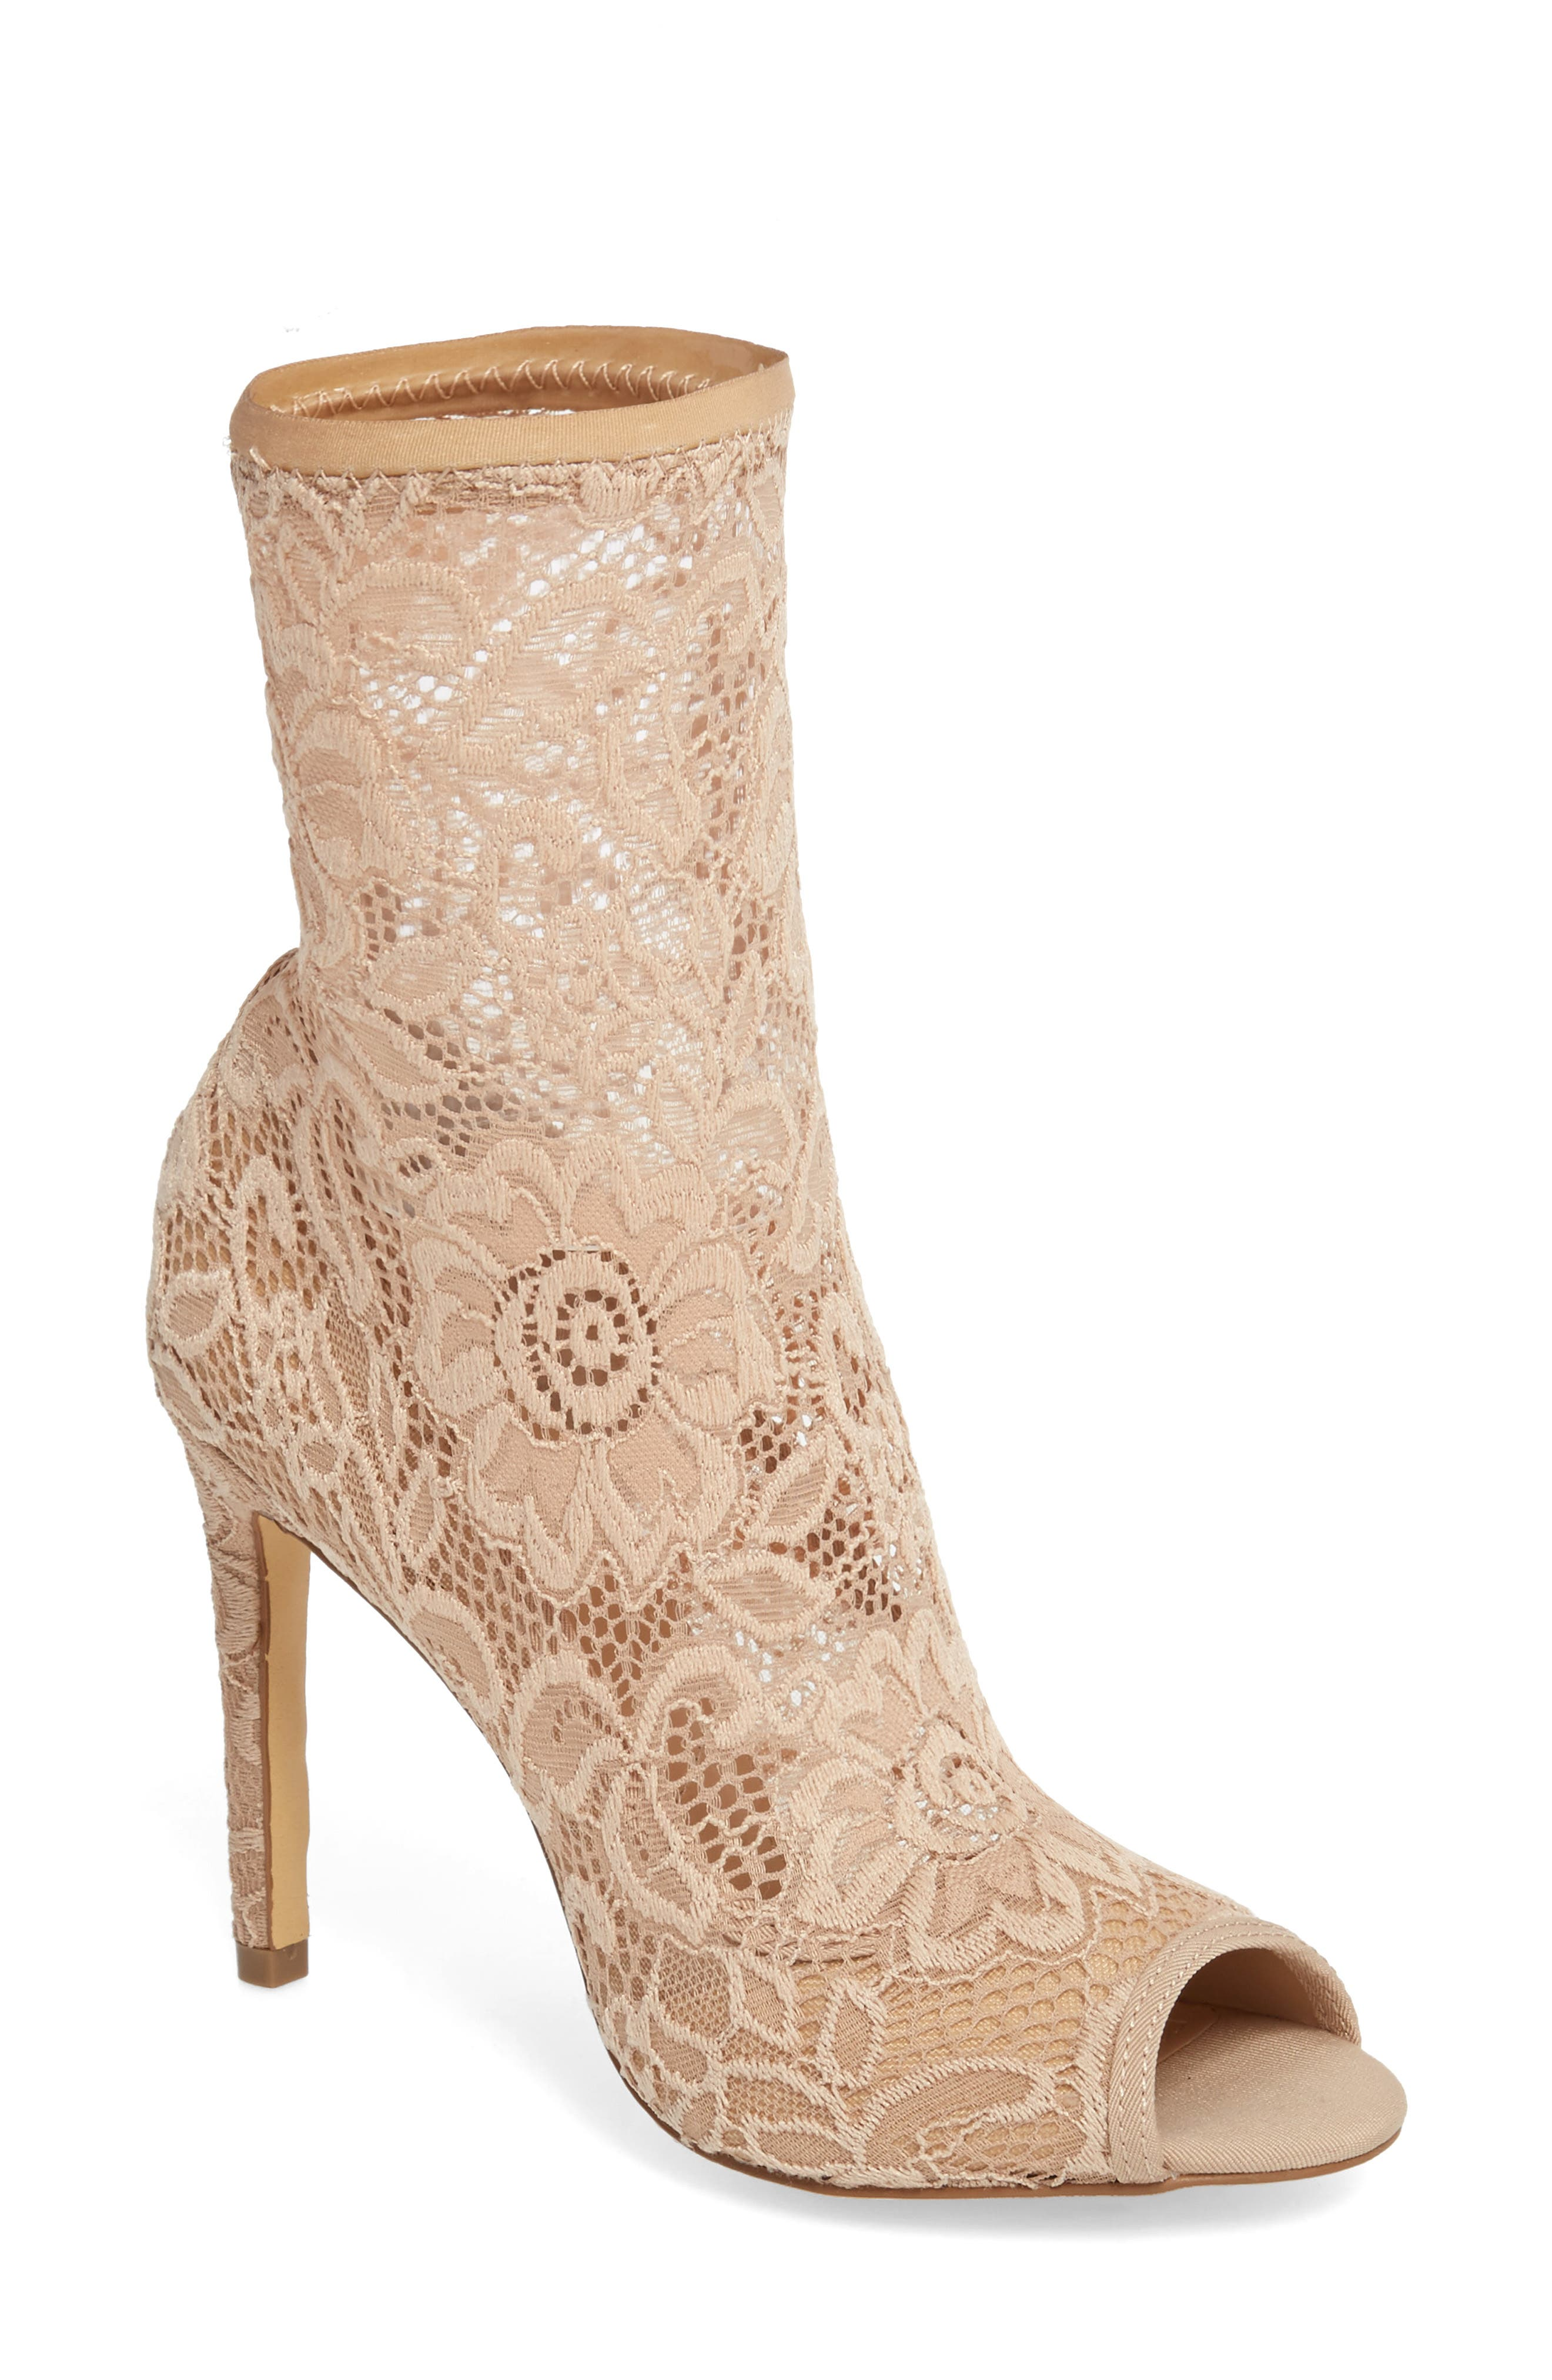 CHARLES BY CHARLES DAVID Imaginary Lace Sock Bootie, Main, color, NUDE FABRIC